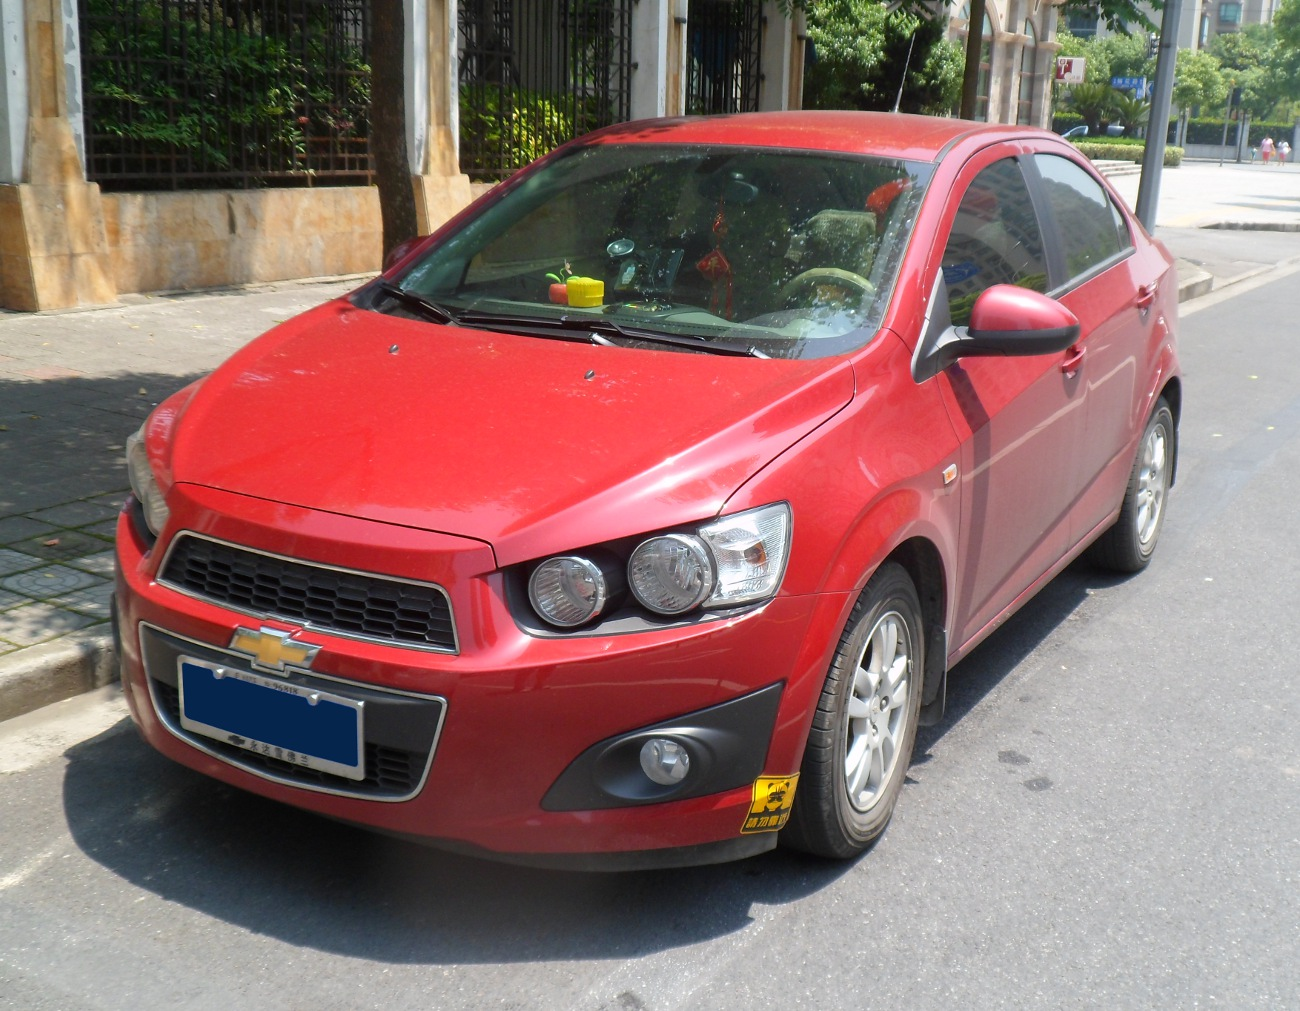 filechevrolet aveo t300 sedan 01 china 20120527